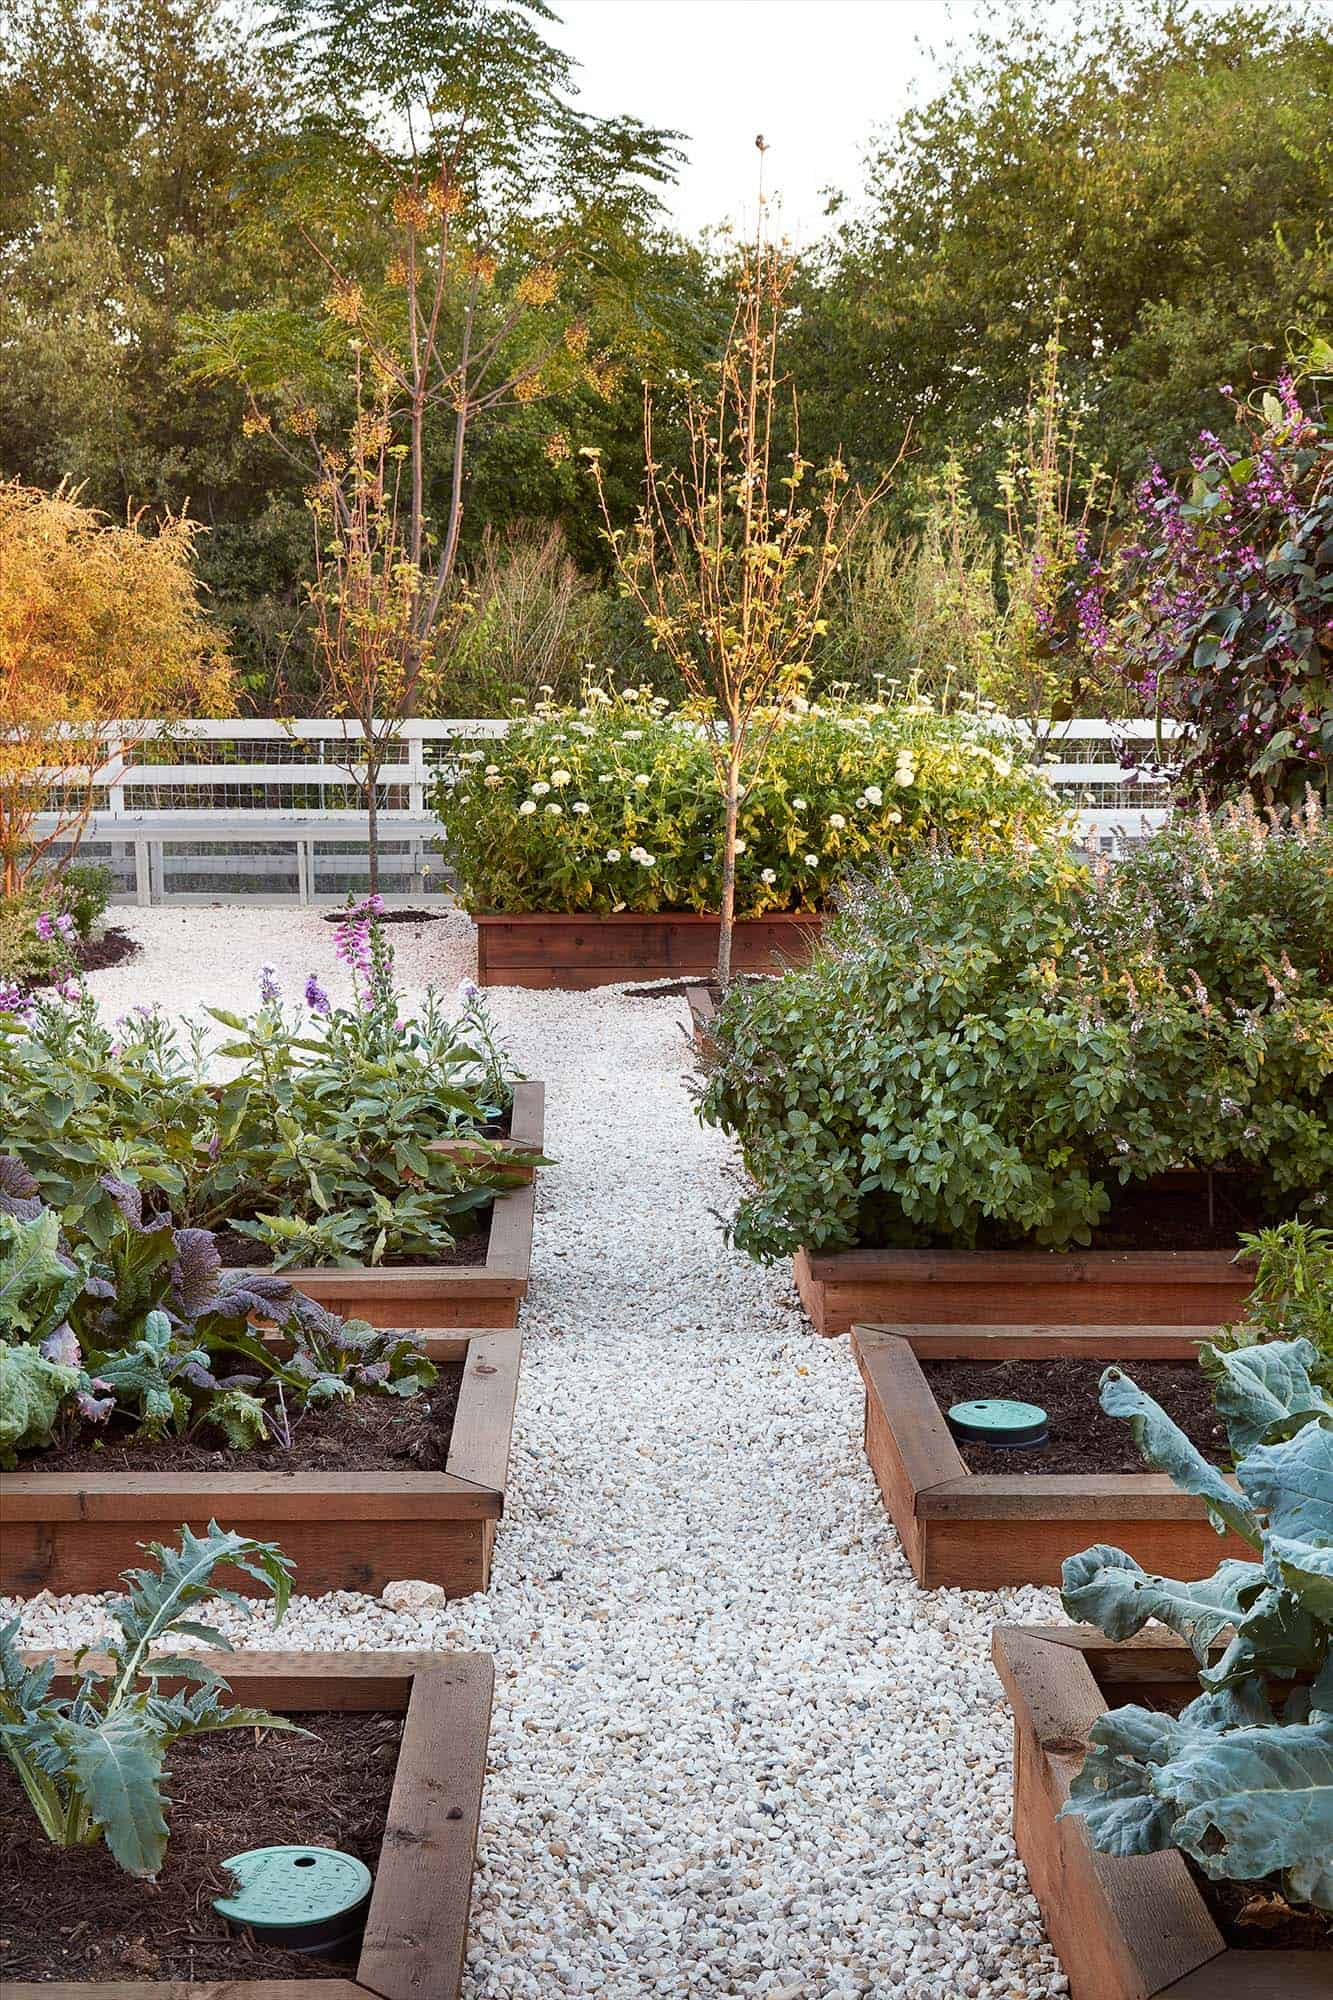 30 Amazing Ideas For Growing A Vegetable Garden In Your ... on Outdoor Vegetable Garden Ideas id=52702